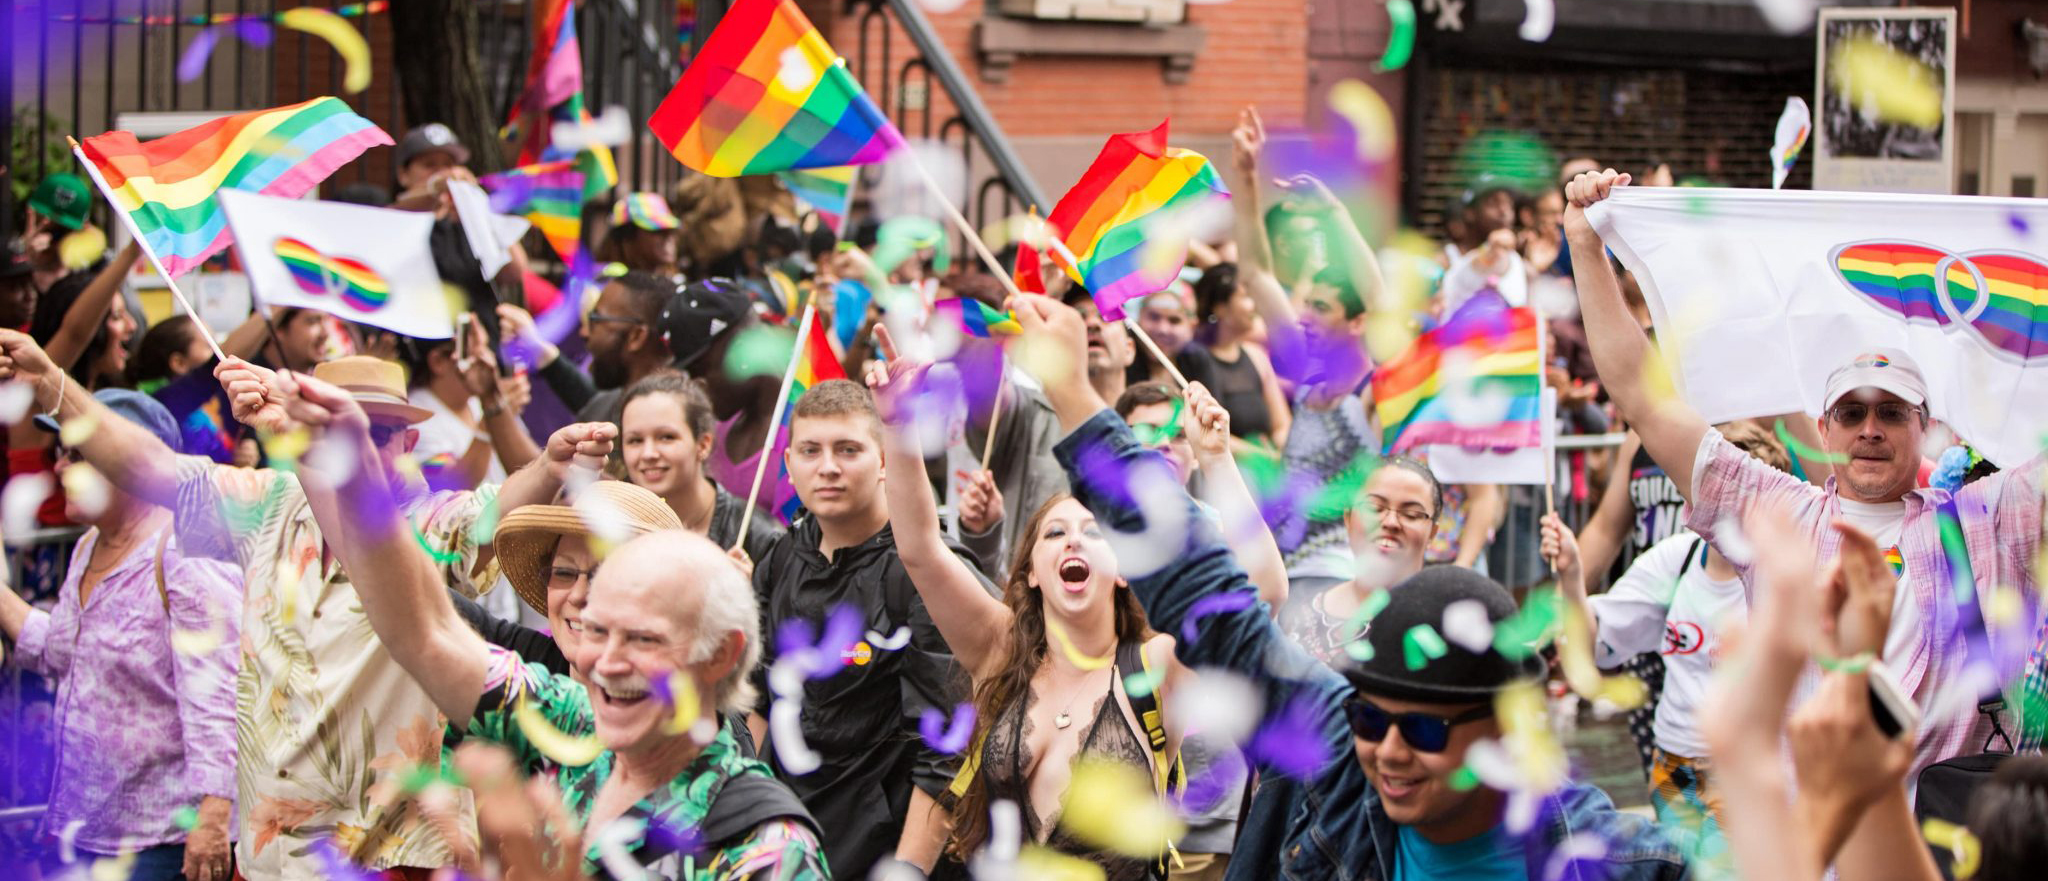 Crowd celebrates Pride in NYC with rainbow flags and confetti